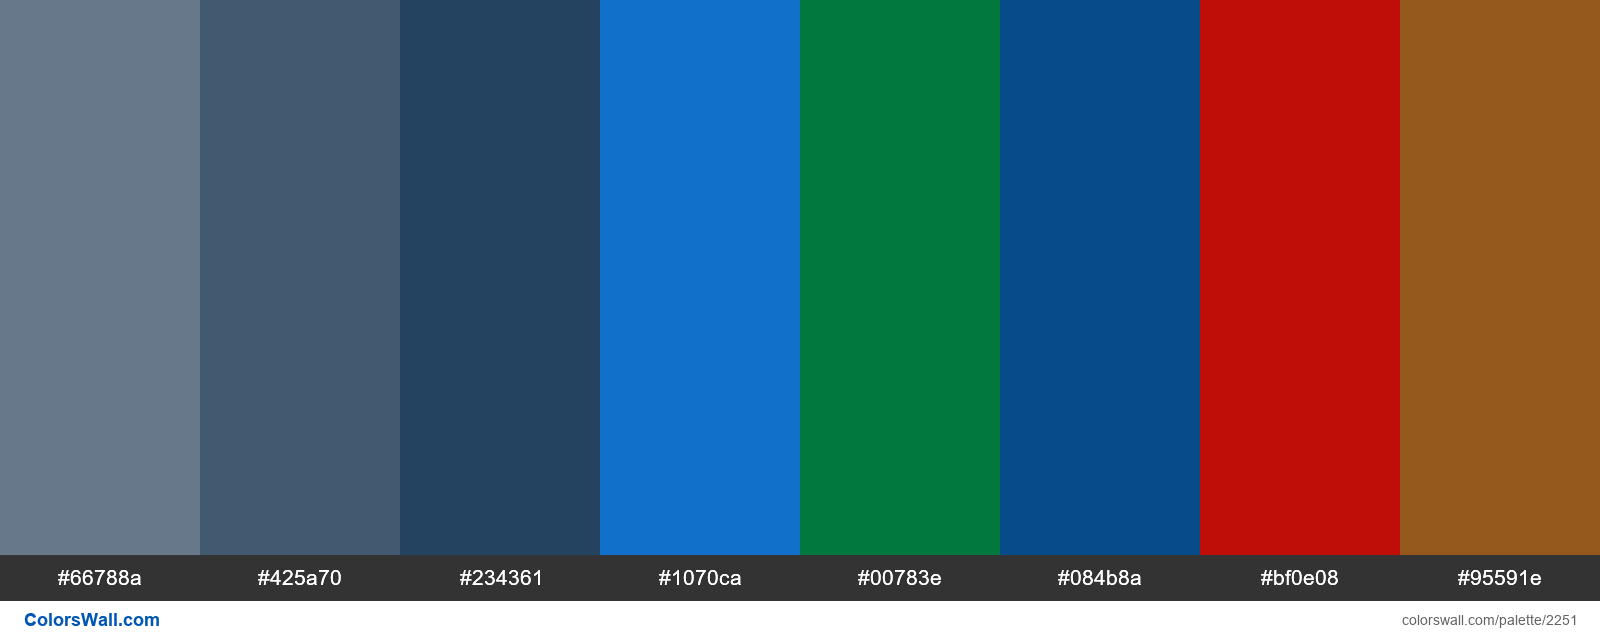 Evergreen Text palette colors - #2251